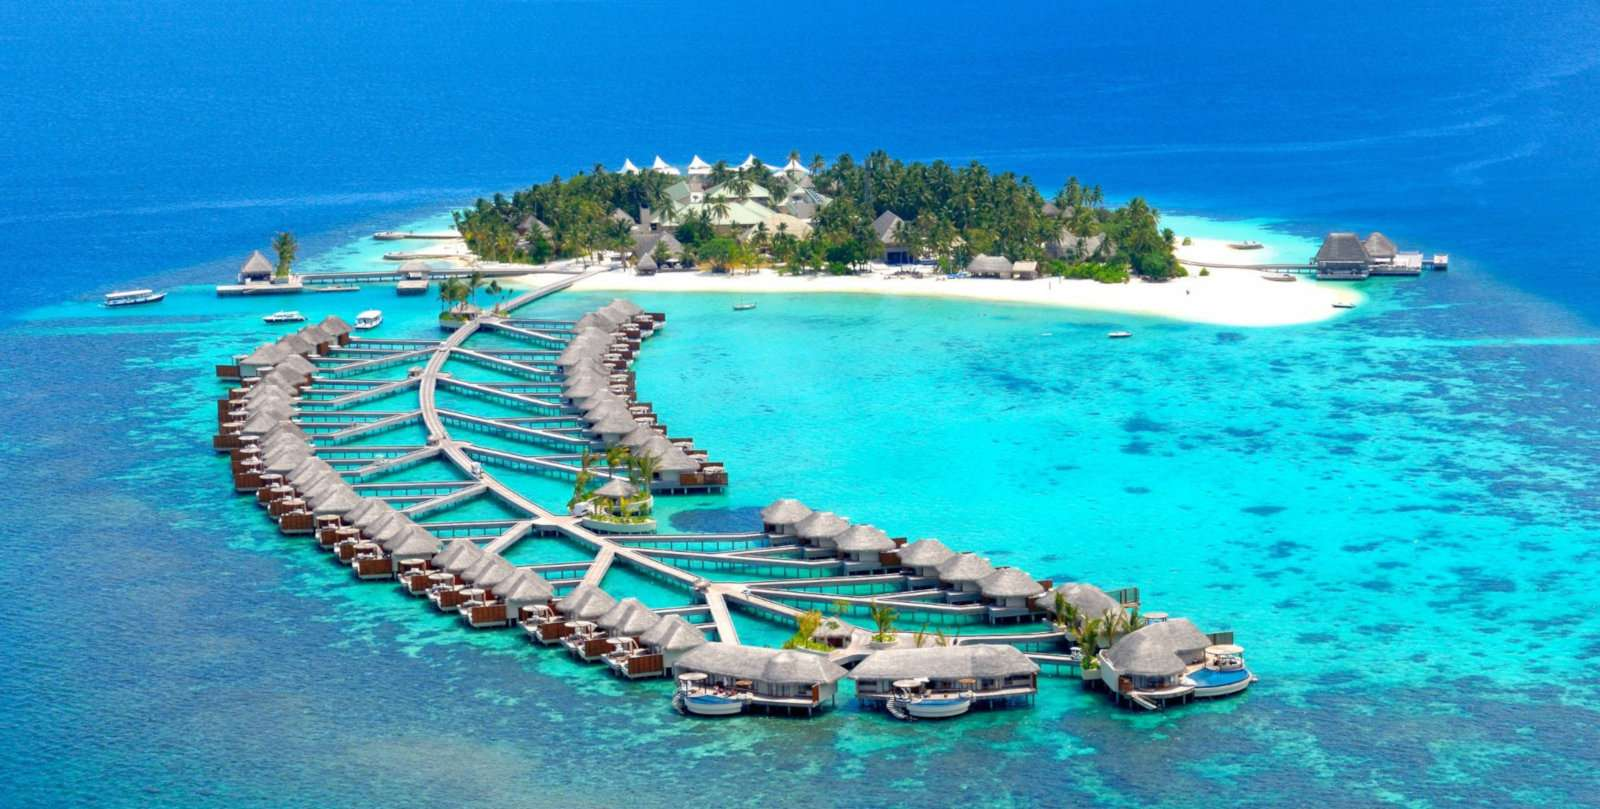 Gay Maldives - stay at the luxurious W Maldives Resort in an over-water villa.